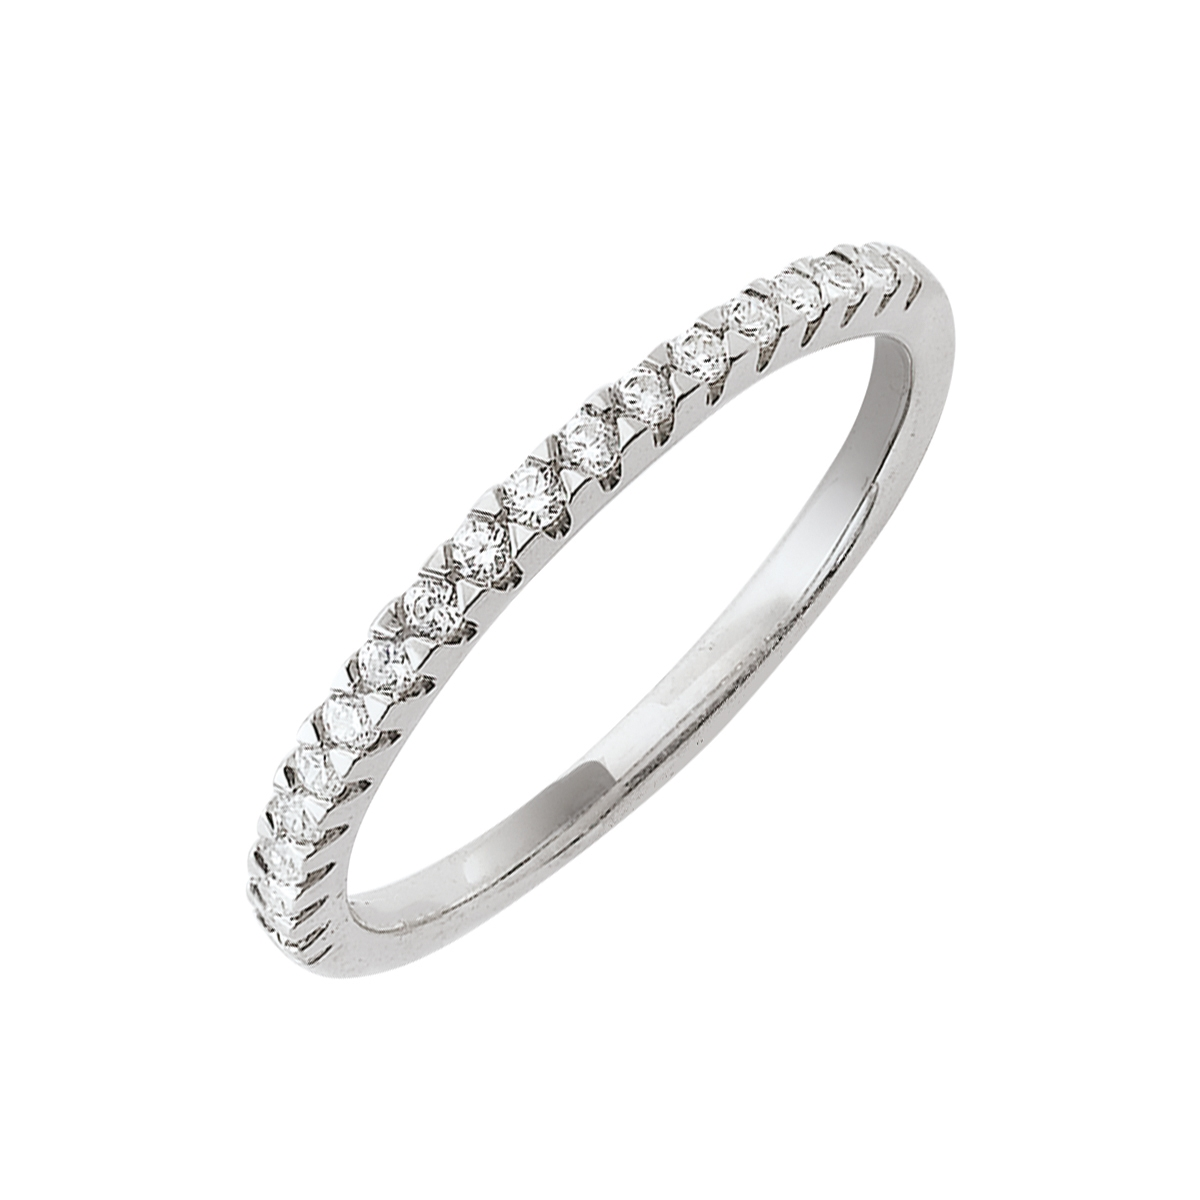 Alliance demi-tour serti griffes or blanc - Diamants synthétiques 0,20 carat